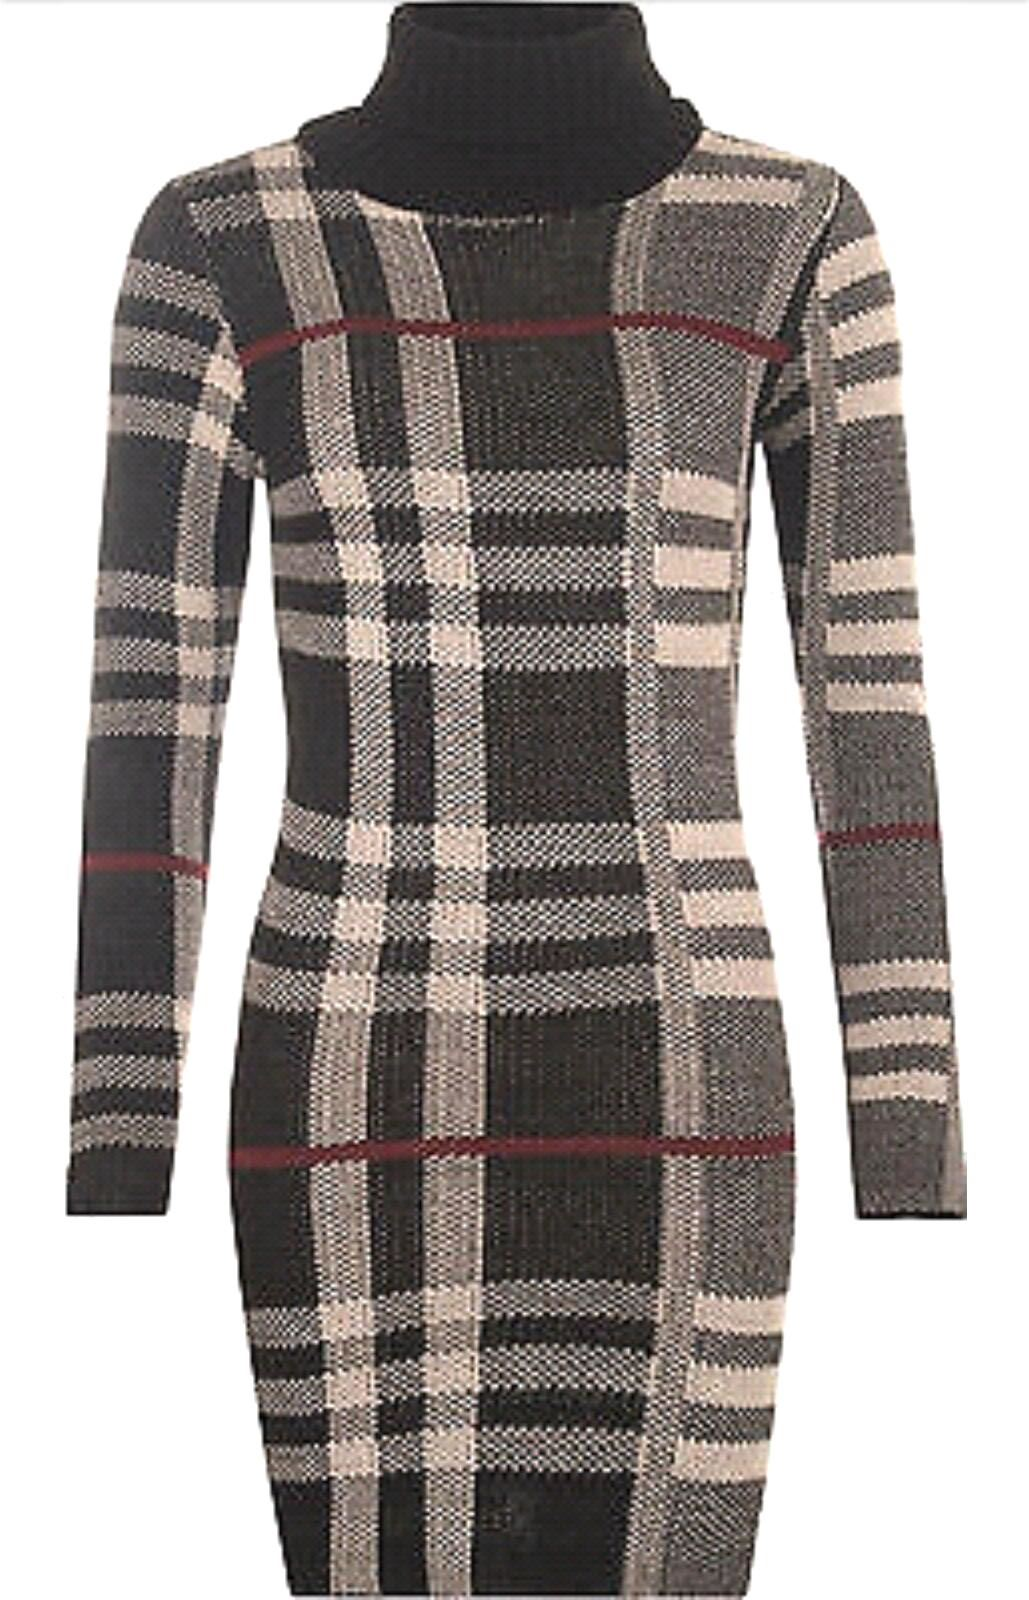 NEW-WOMENS-LADIE-POLO-COWL-NECK-KNITTED-TARTAN-CHECK-MINI-DRESS-COWL-TUNIC-TOP